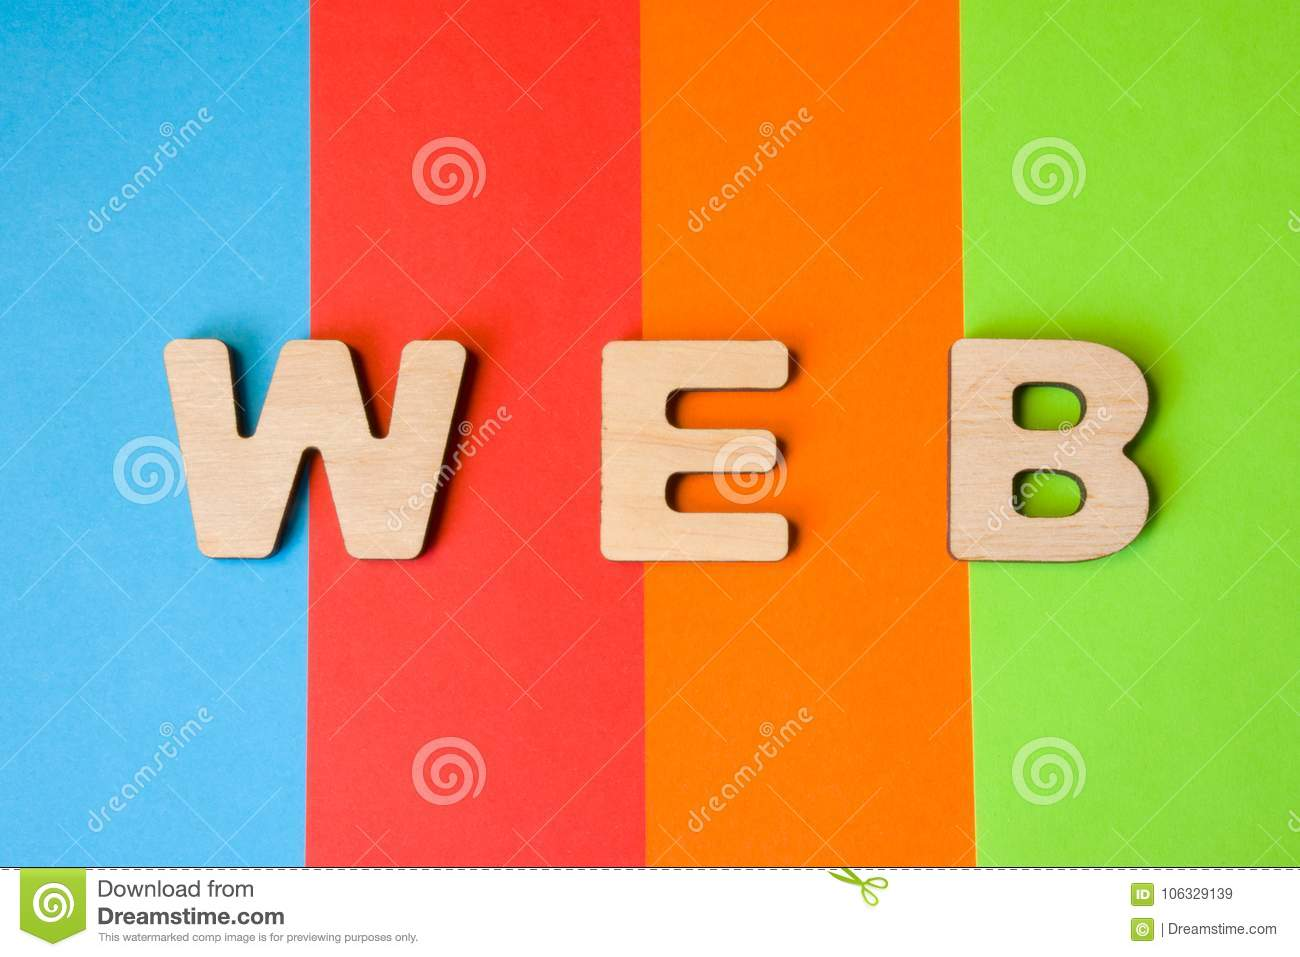 Word WEB composed of 3D letters is in background of 4 colors: blue, red, orange and green. Short for World Wide Web or the global